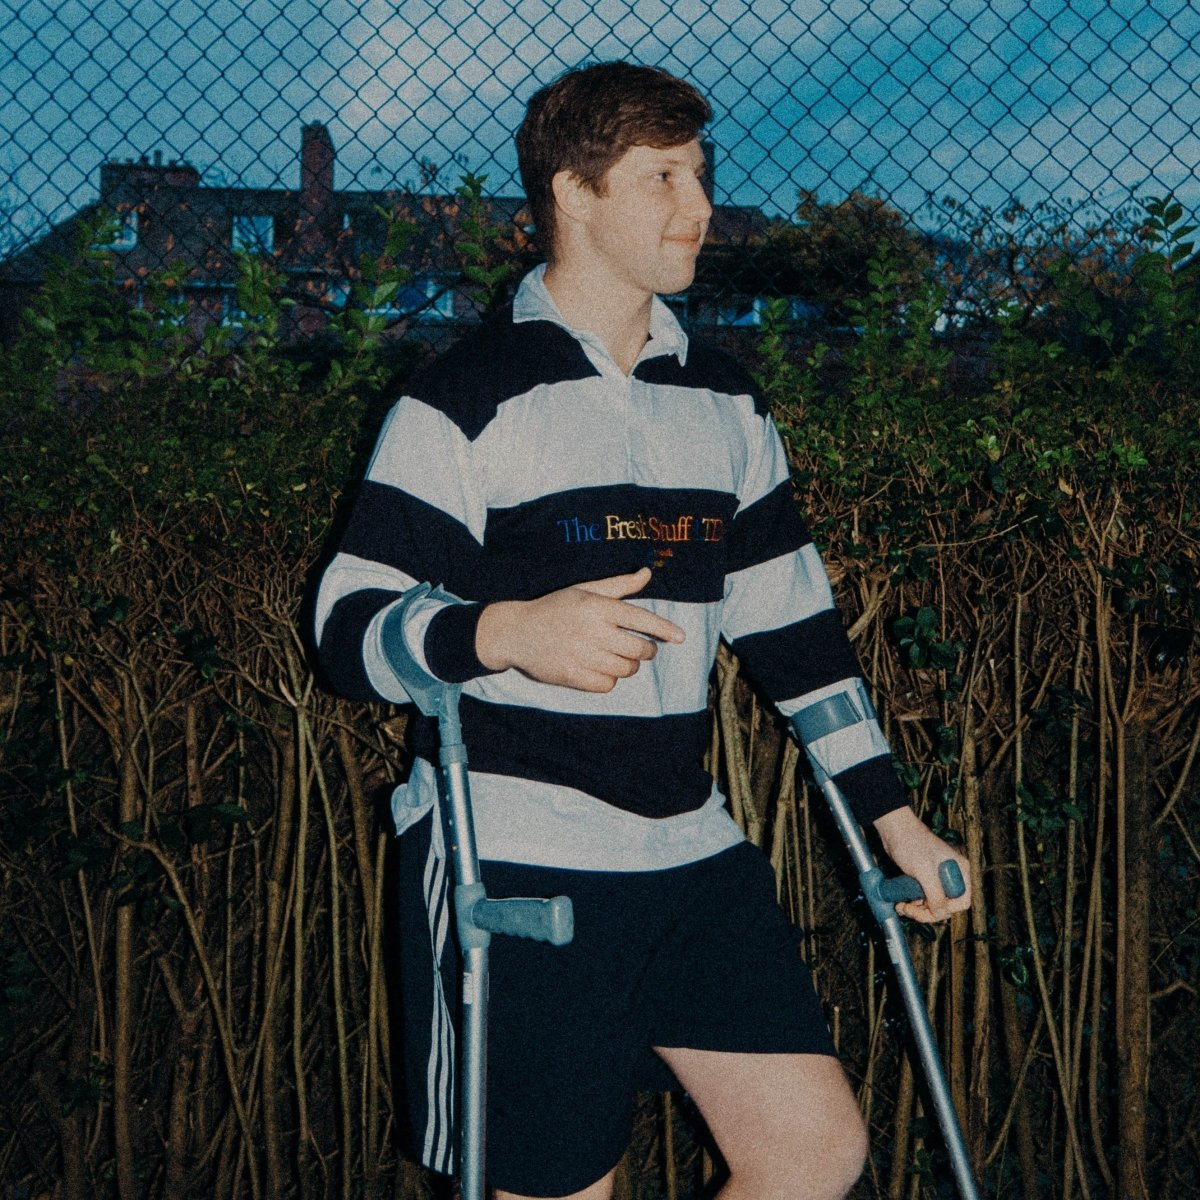 The Fresh Stuff LTD Unisex Embroidered Striped Navy/White Rugby Shirt